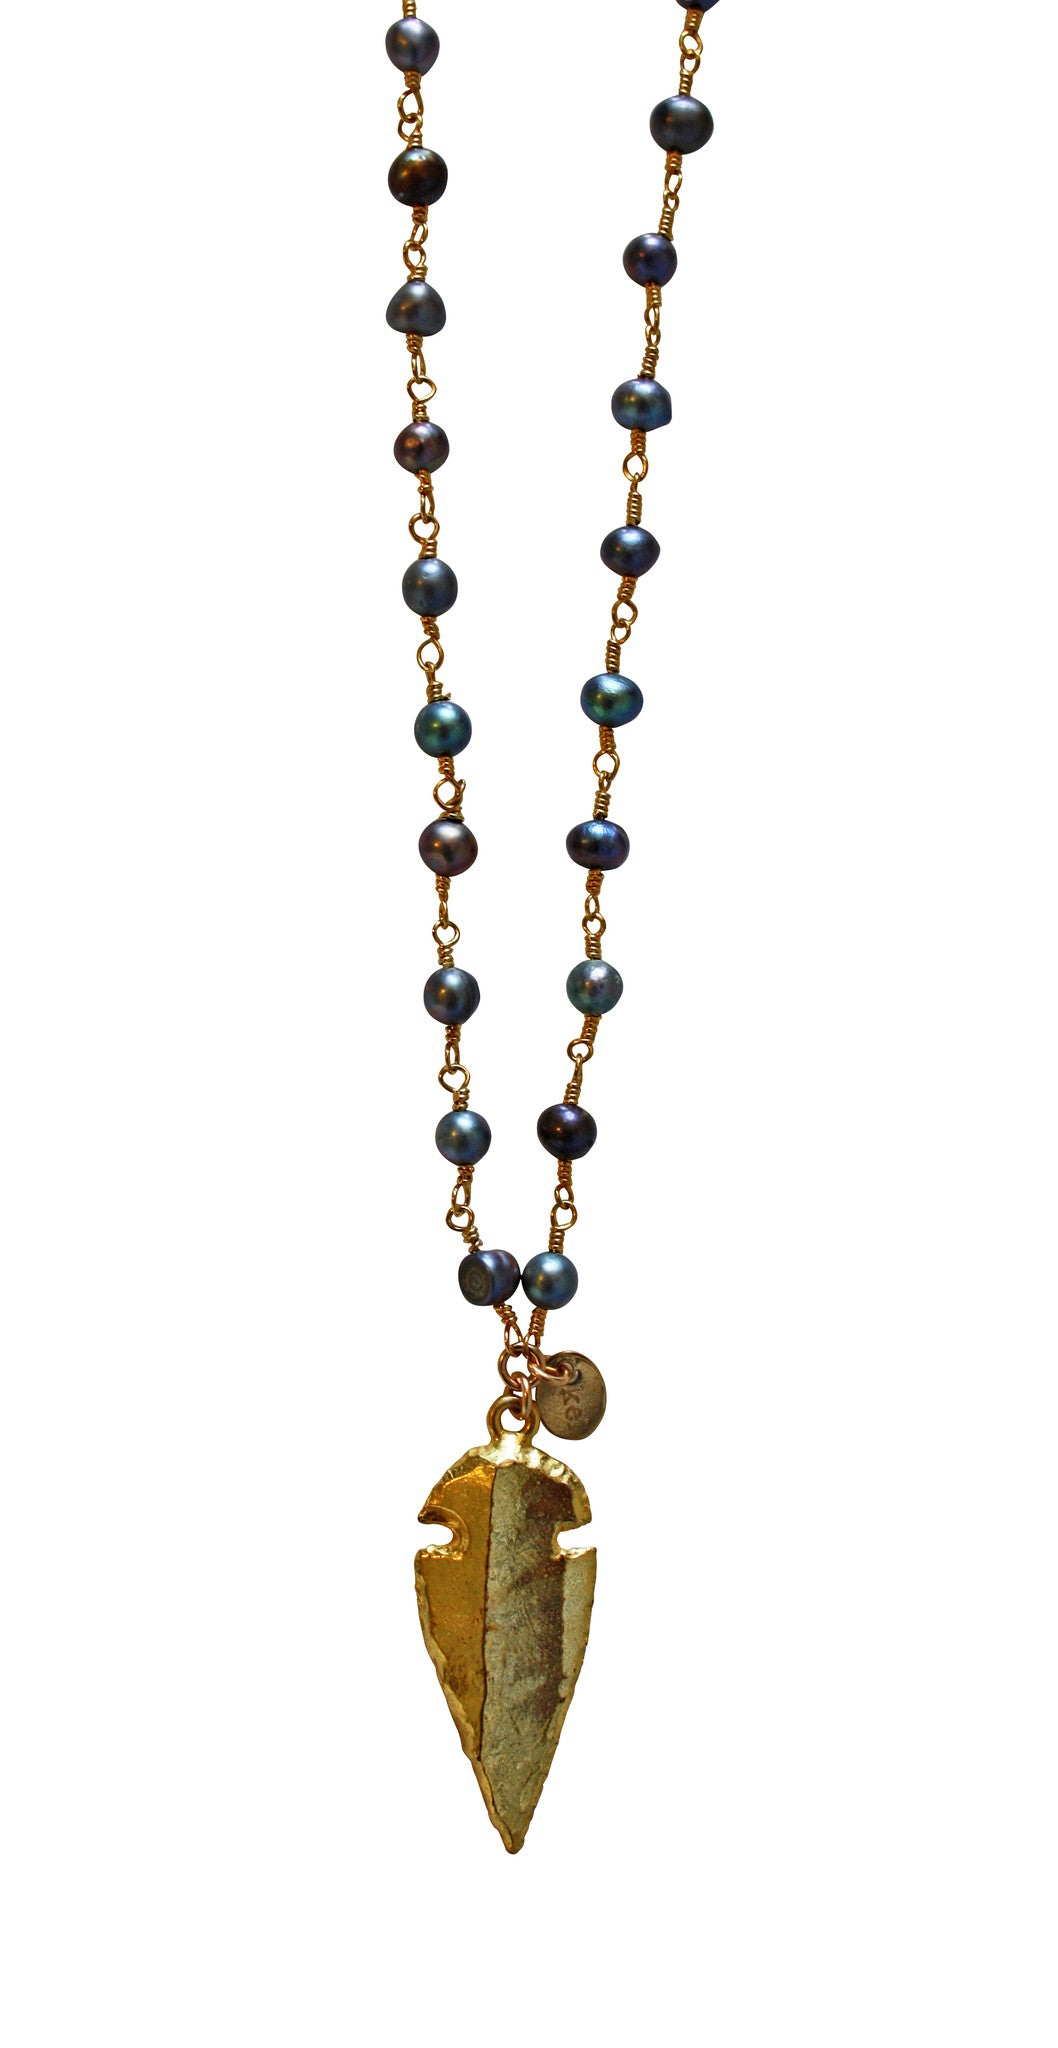 peacock pearl necklace - gold arrowhead